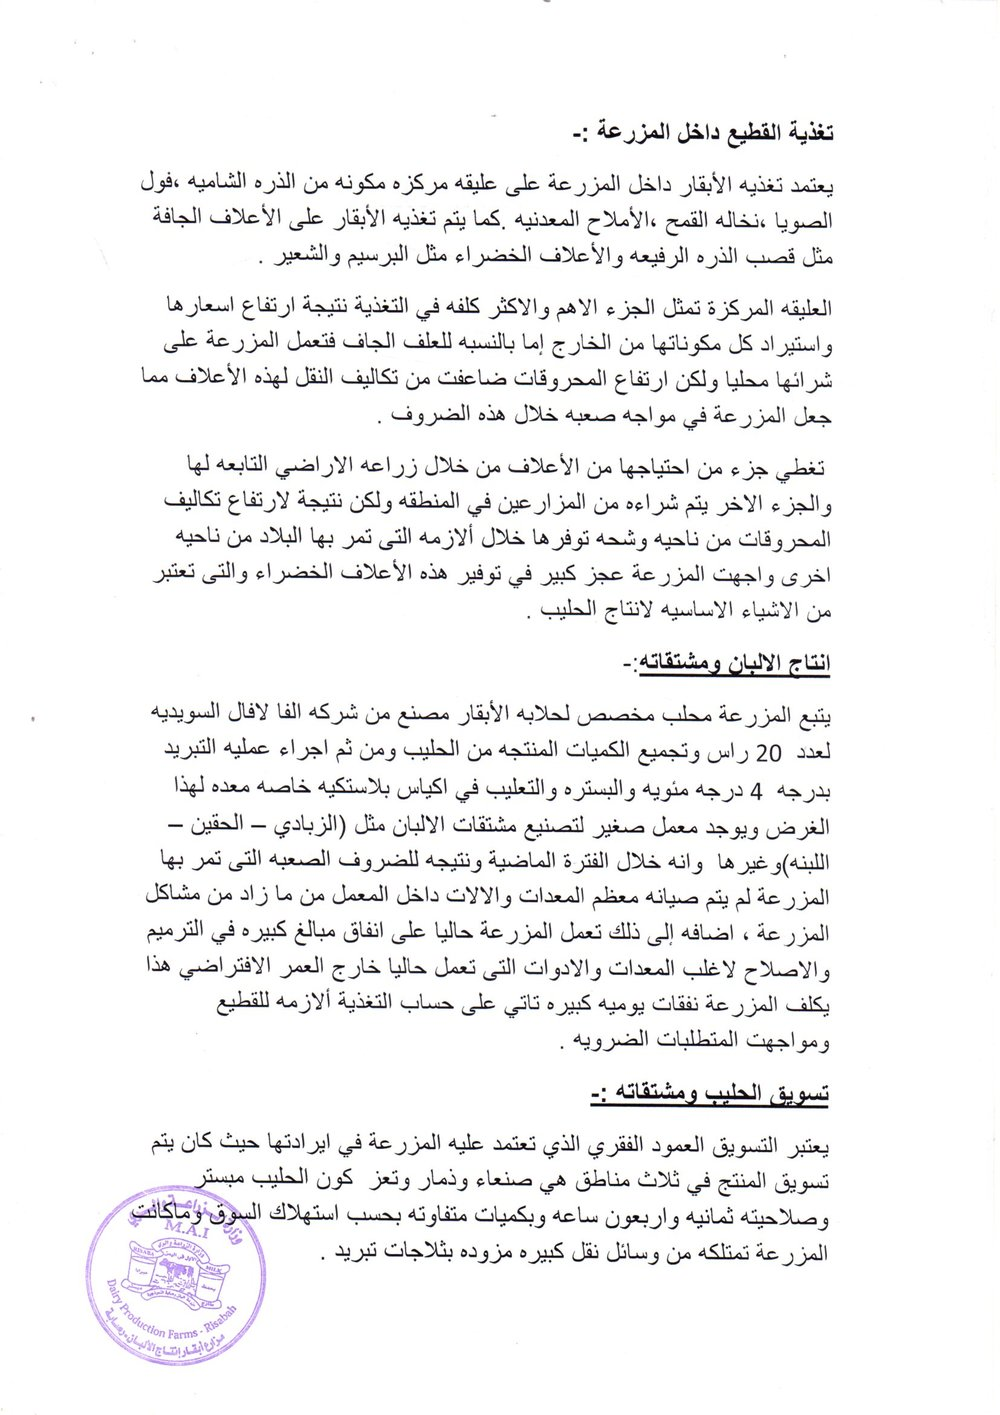 dhamar report page 3 Rosabah farm for OWAP-AR 3 NOV 2018   obtained by Hisham.jpg